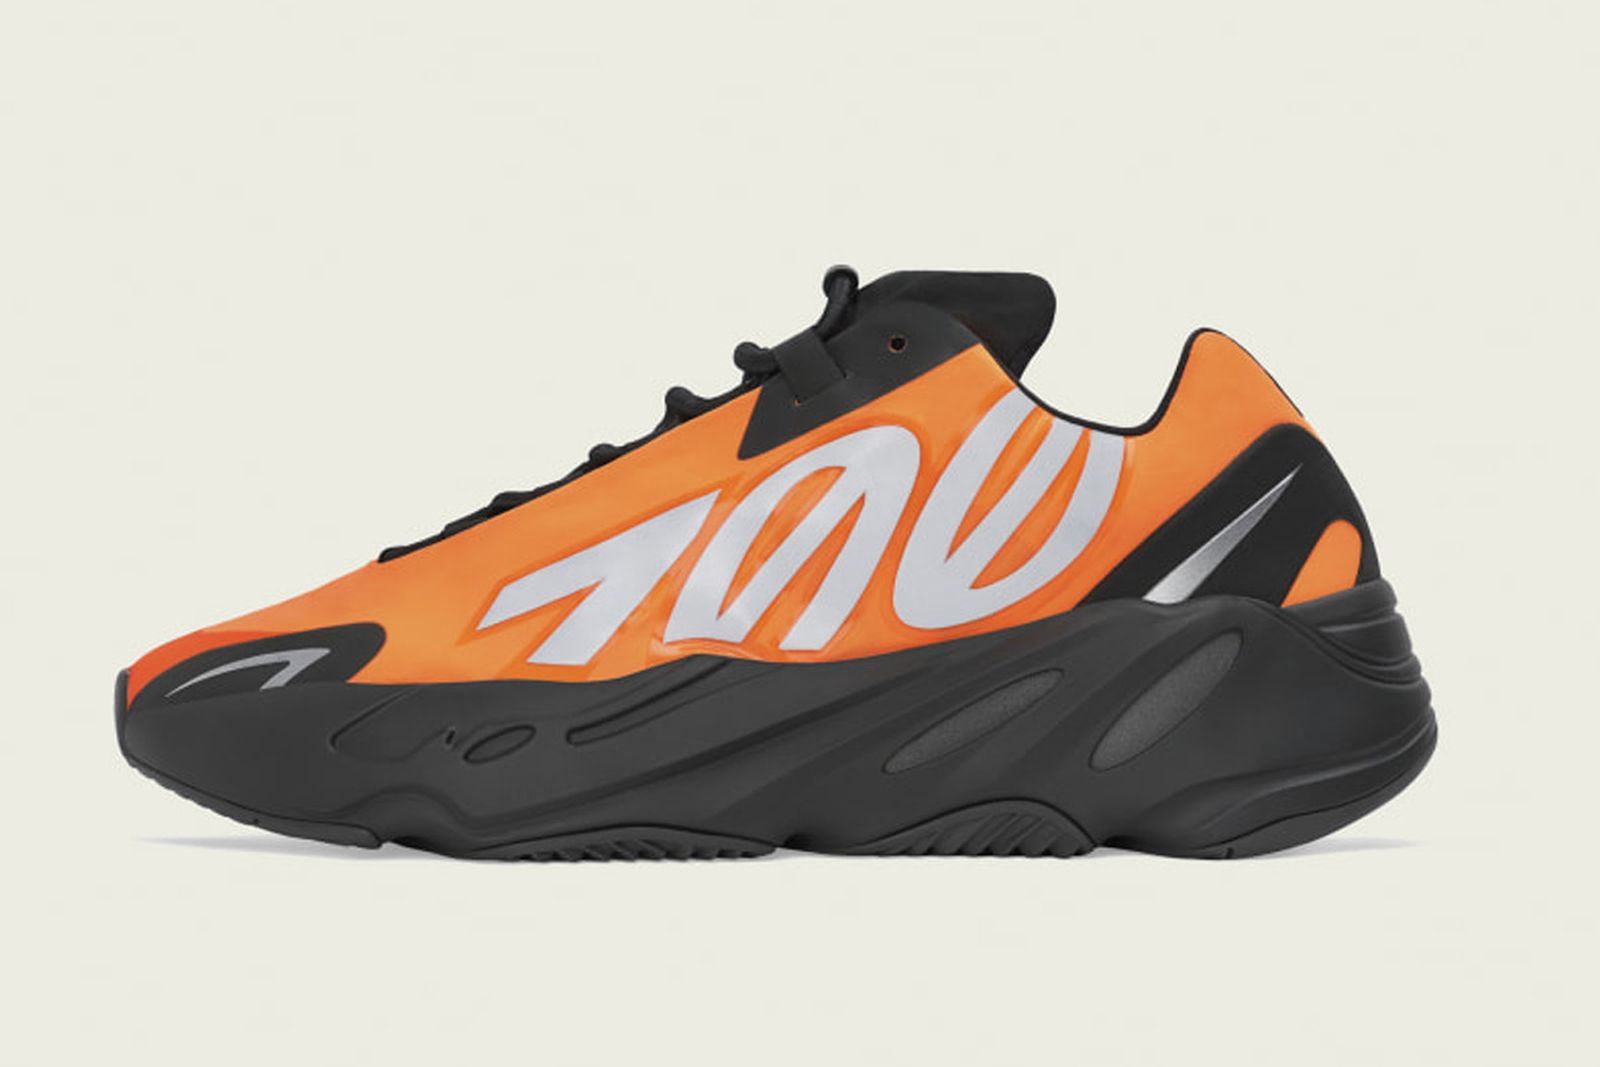 adidas-yeezy-boost-700-mnvn-orange-release-date-price-04